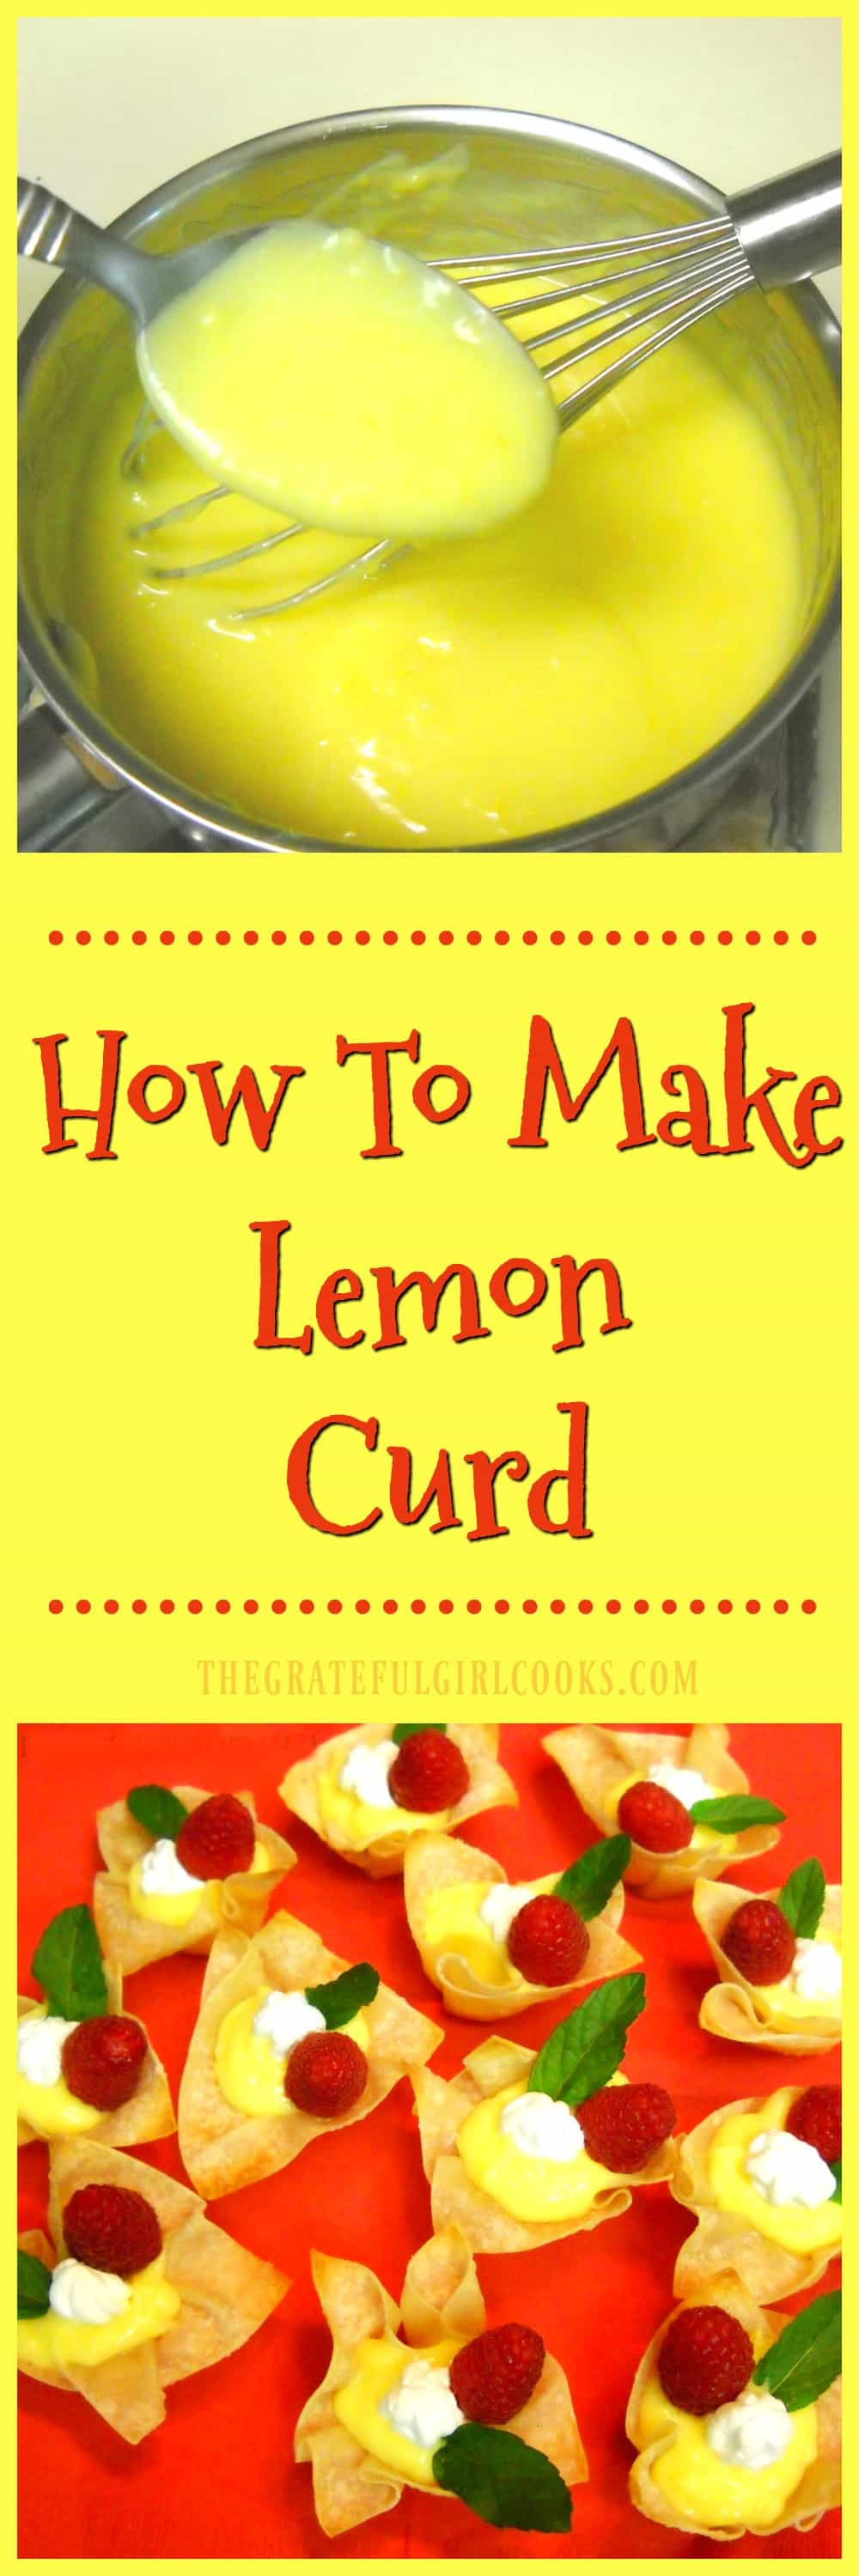 How To Make Lemon Curd / The Grateful Girl Cooks! Thick tart and sweet lemon sauce tastes great on pancakes, waffles, in tarts and other desserts!